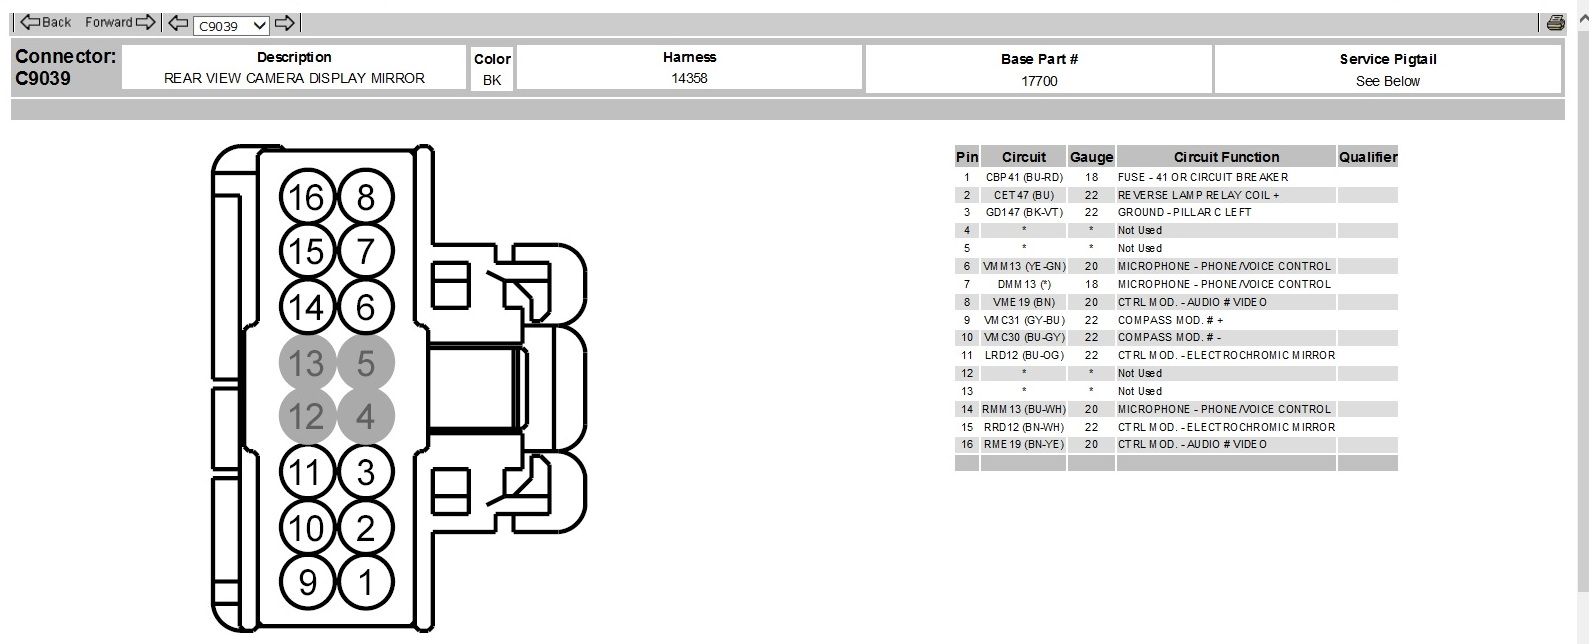 rear view mirror wiring pinout diagram gm auto electrical wiring2013 chevy cruze fuse box diagram chevy auto fuse box